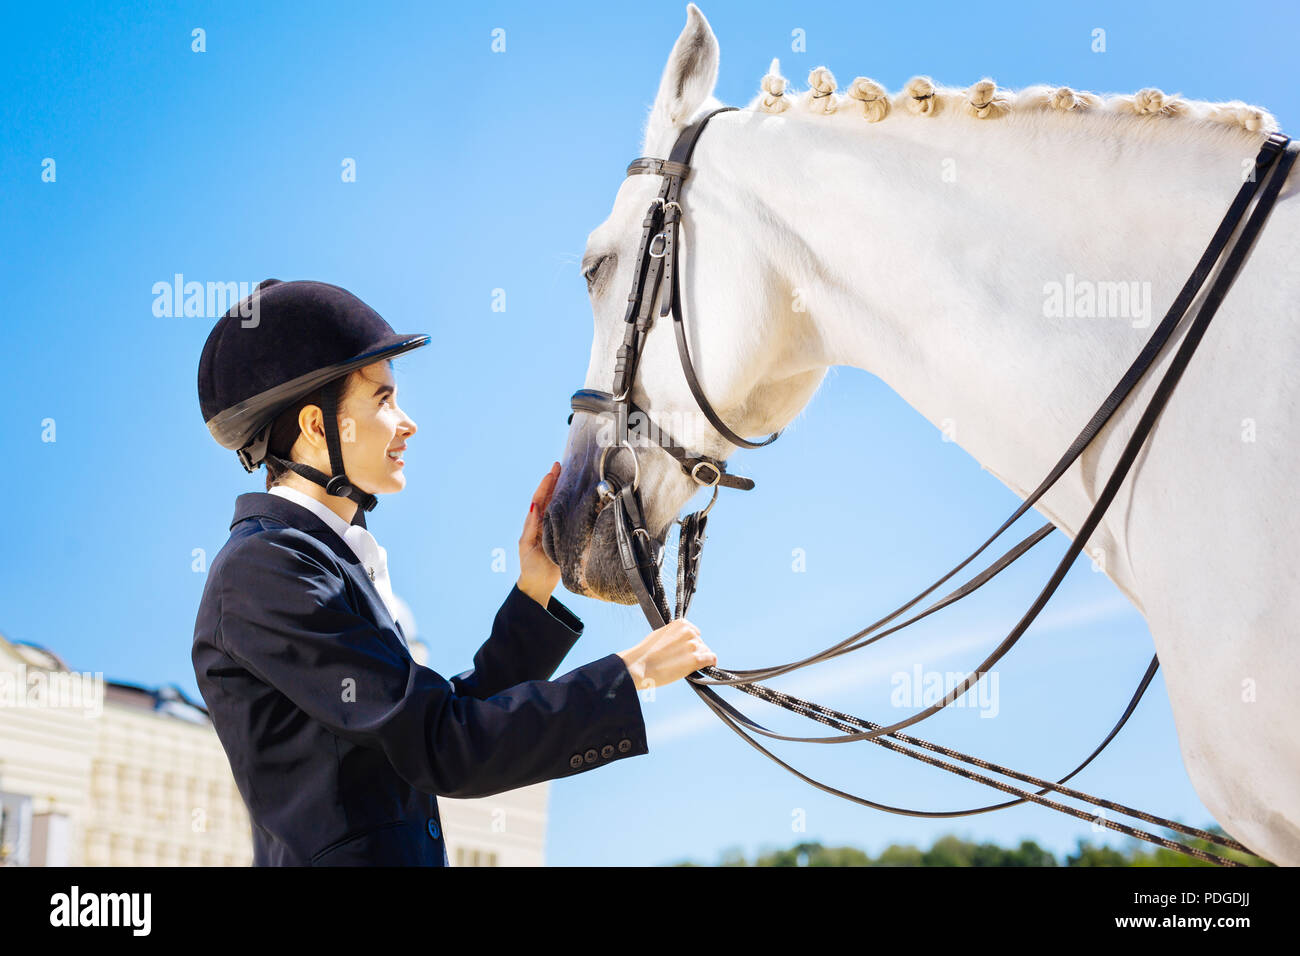 Female rider wearing black helmet looking at white horse - Stock Image